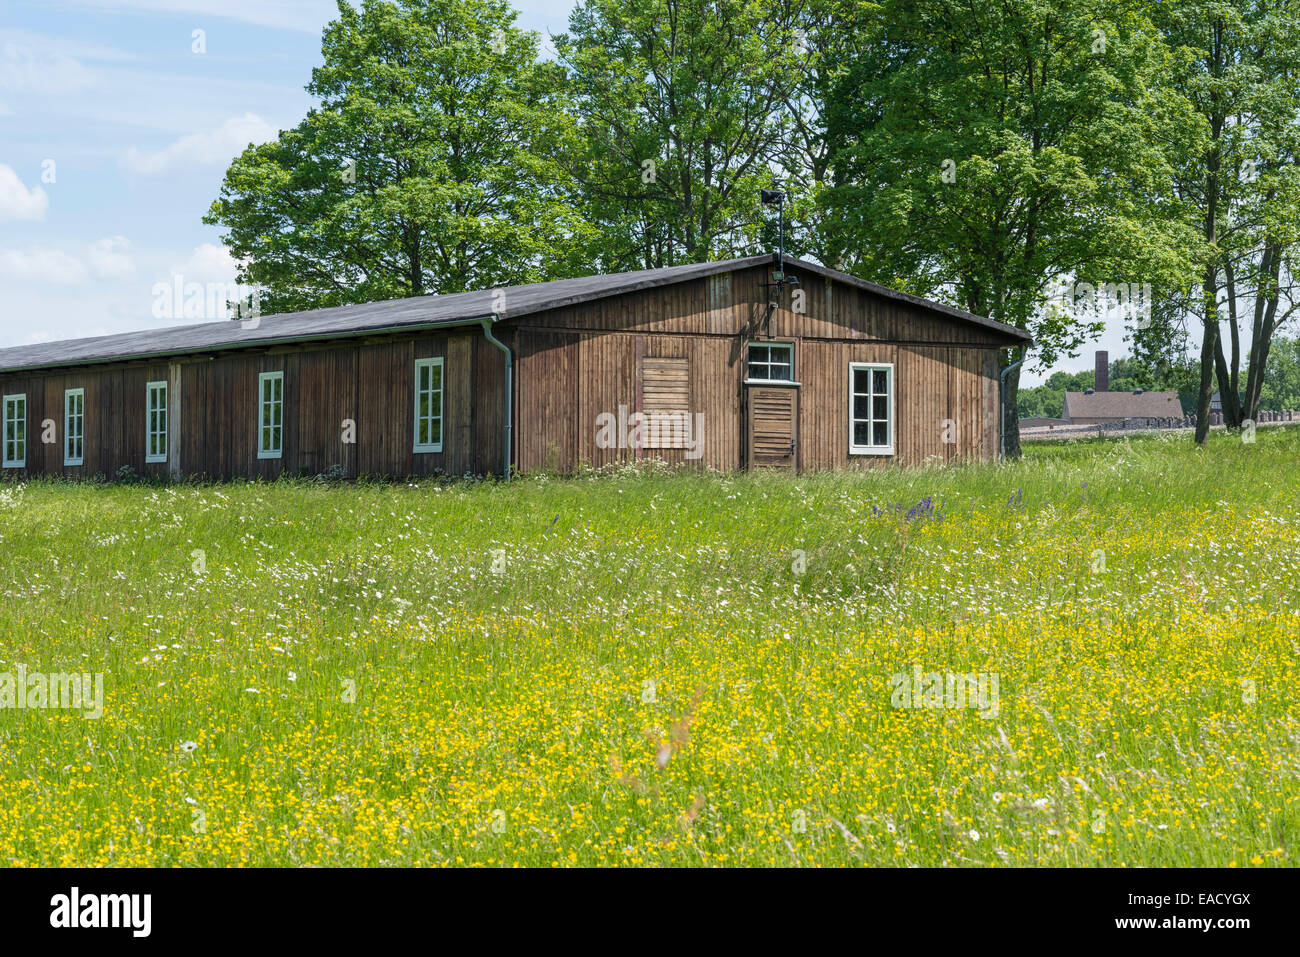 Wooden barracks, former hospital ward, Buchenwald concentration camp, Weimar, Thuringia, Germany - Stock Image